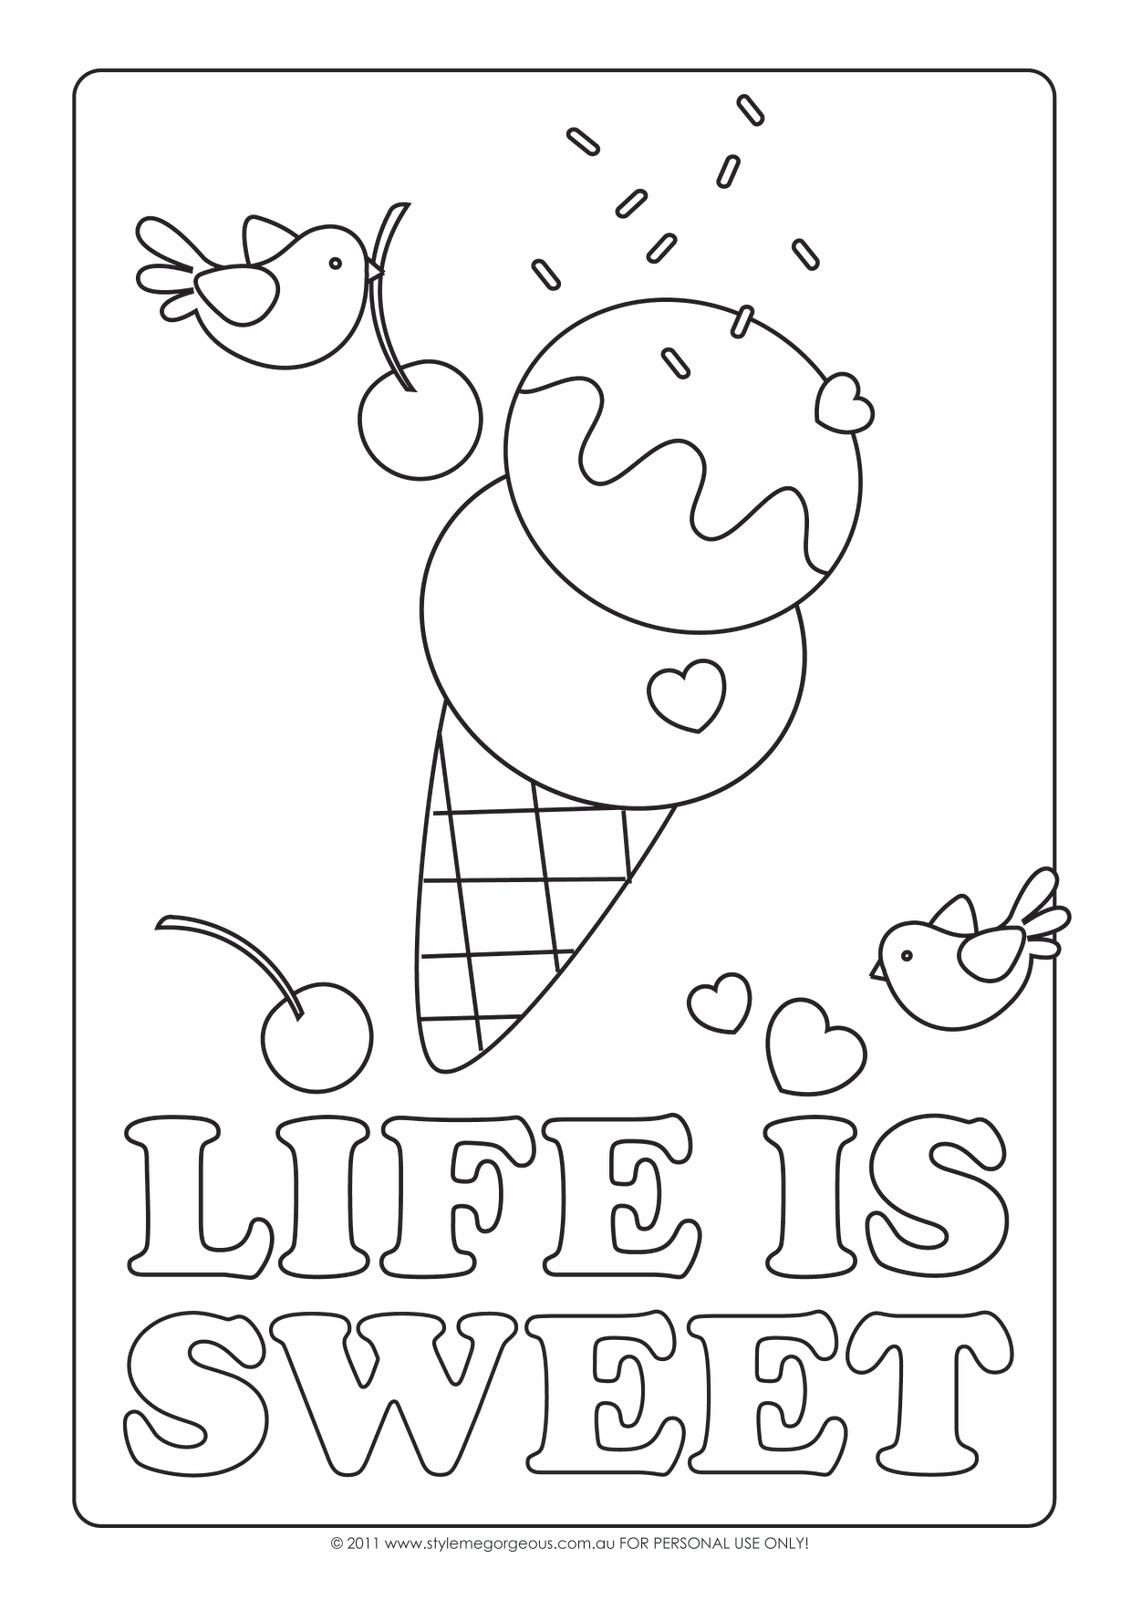 coloring pages ice - photo#17